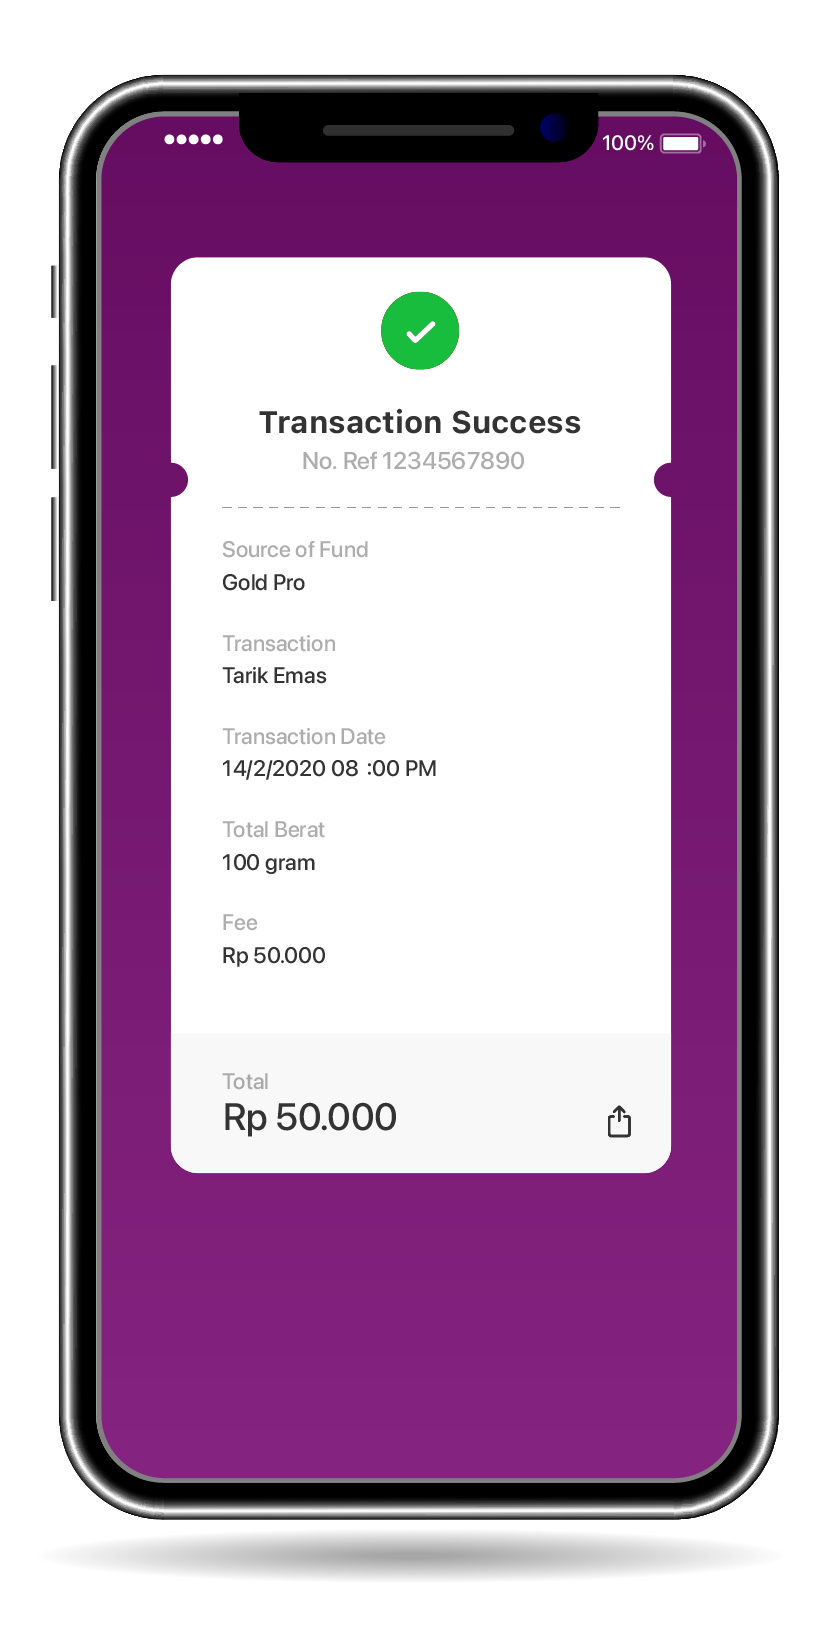 Notification will appear if your transaction is successful You will received your gold within 1 – 3 working days